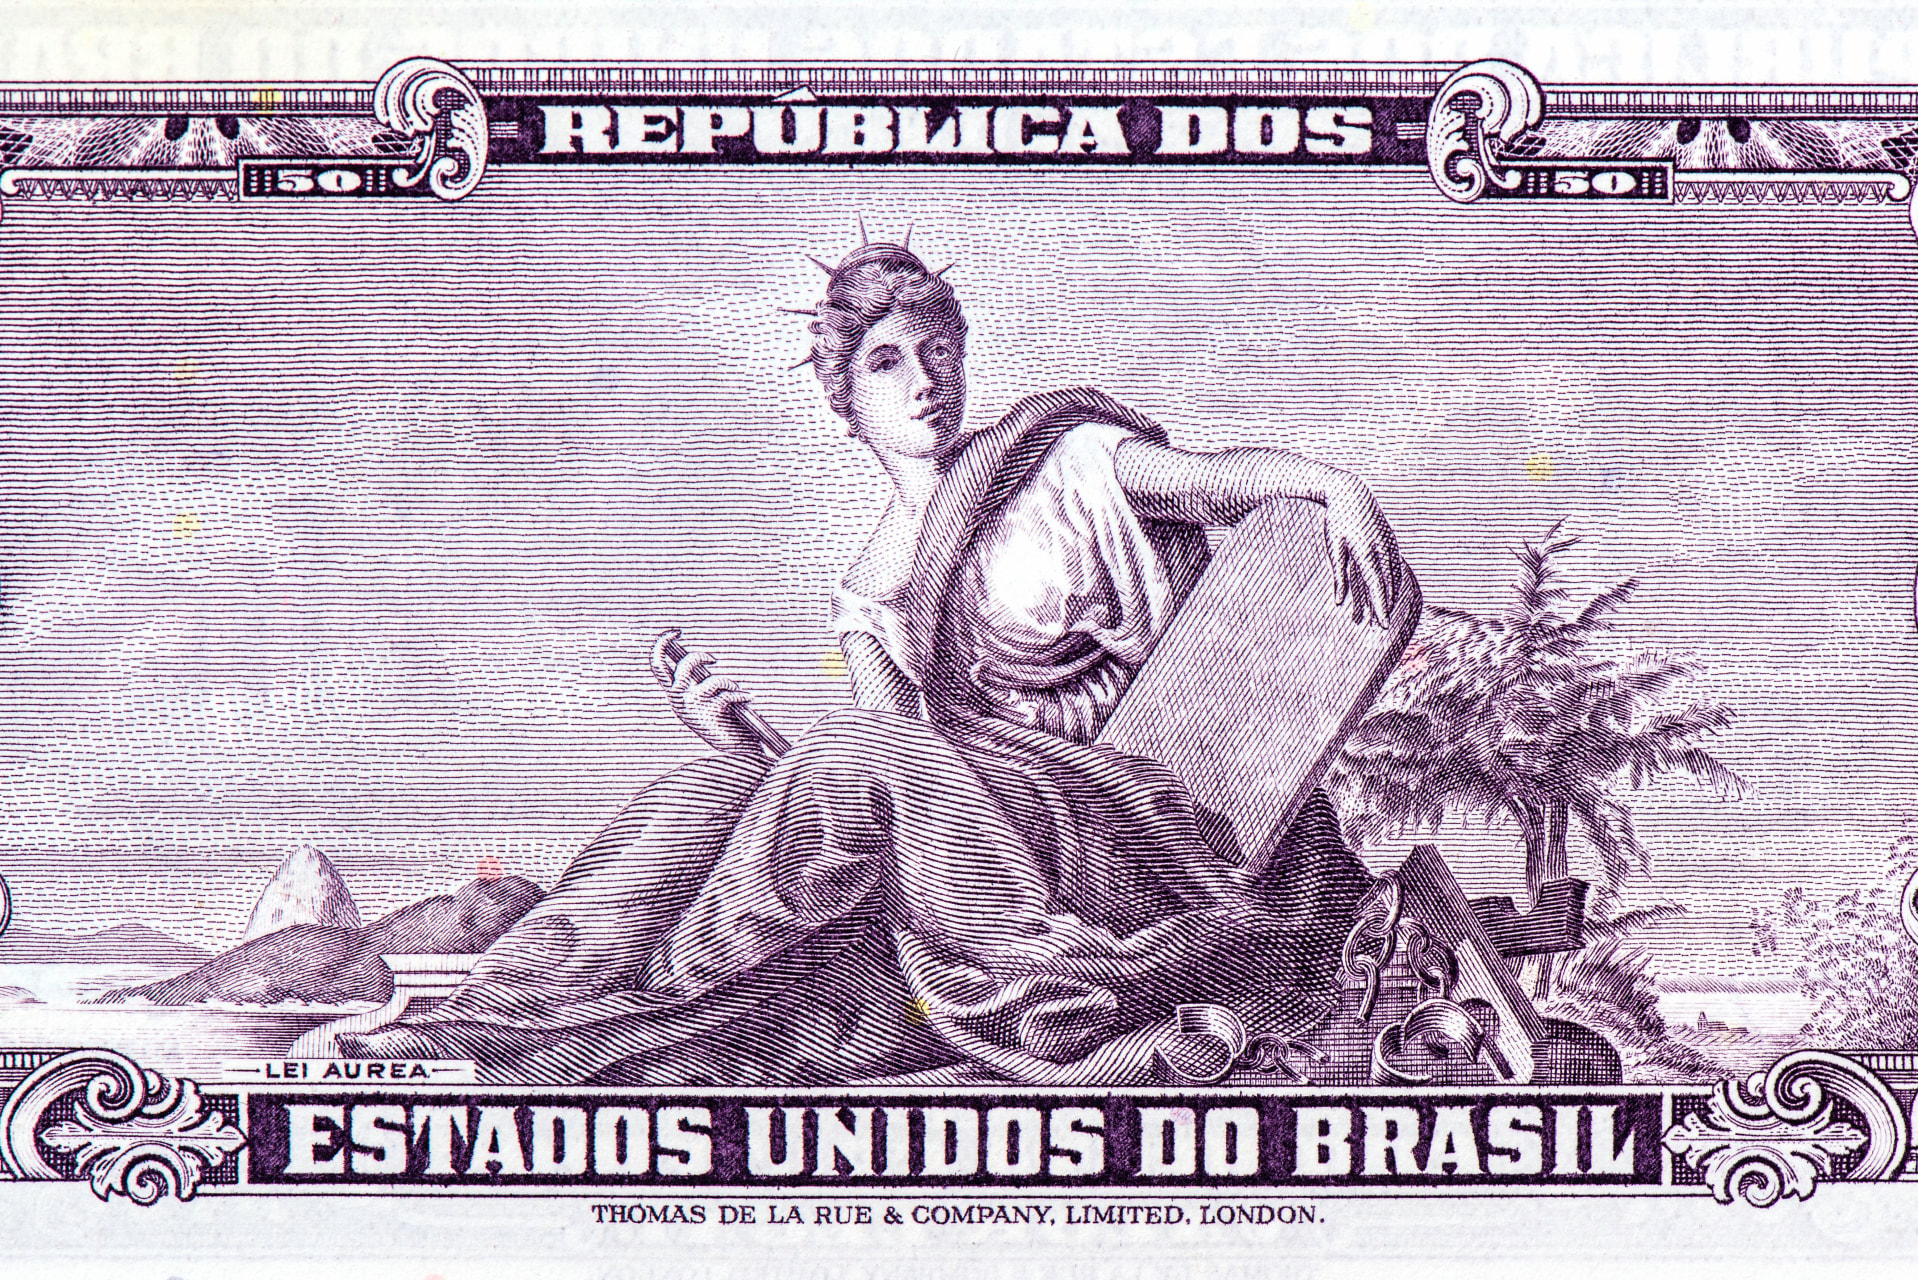 Salvador Bahia - 13th of May - The Untold History of Slavery in Brazil